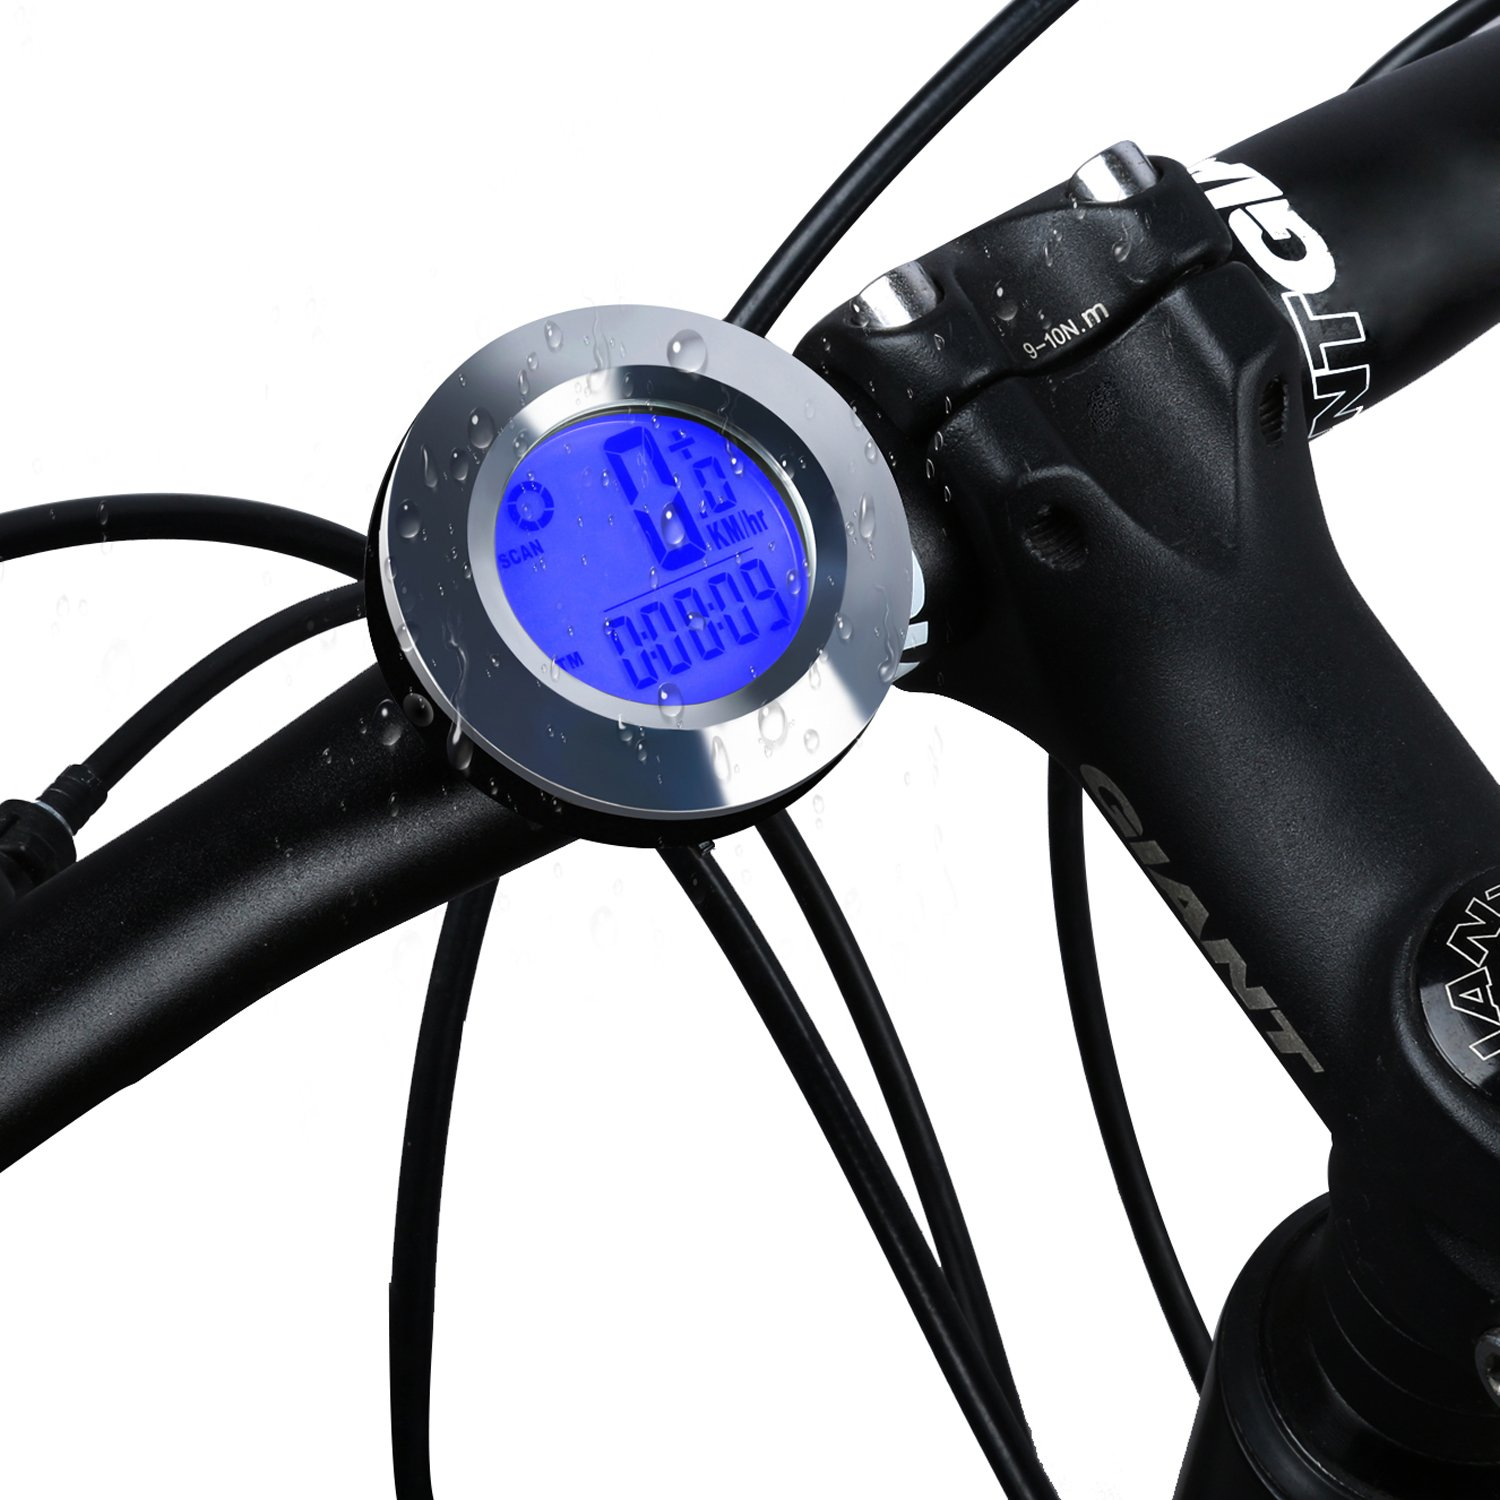 ICOCOPRO Bike Speedometer and Odometer Wireless - Flexible Round Shape,Waterproof Cycle Computer with LCD Backlight Display Multi-Function Bicycle Computer 3AWJ-YP0702031